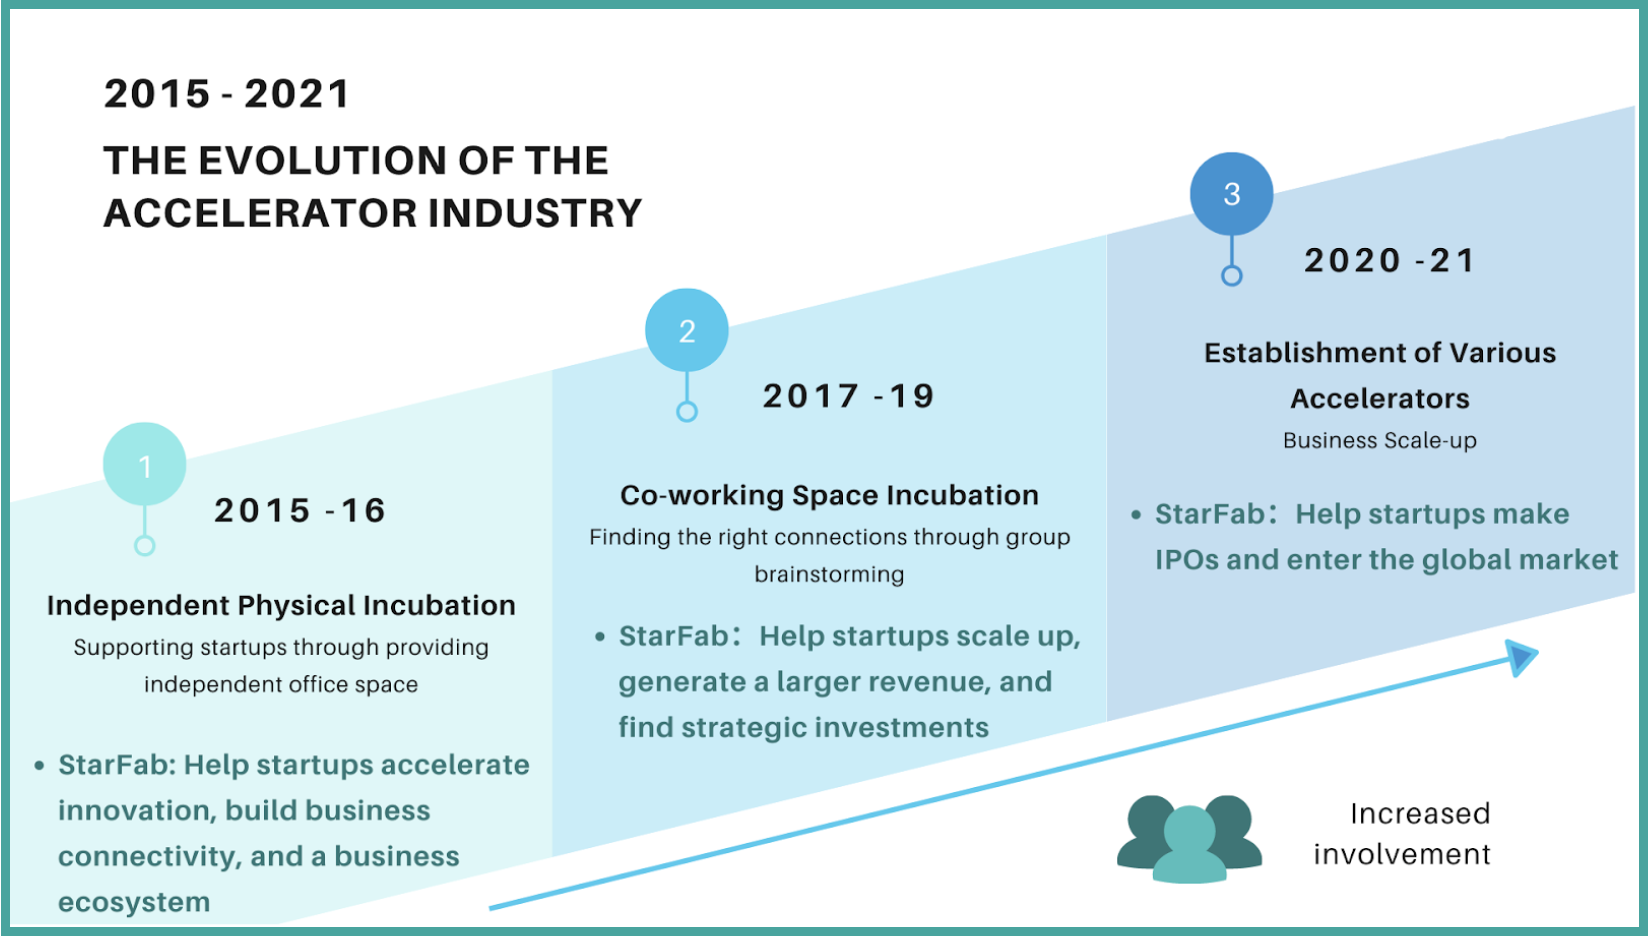 【StarFab Newsletter Issue 1】A Discussion Around the Accelerator Industry and Ecosystem